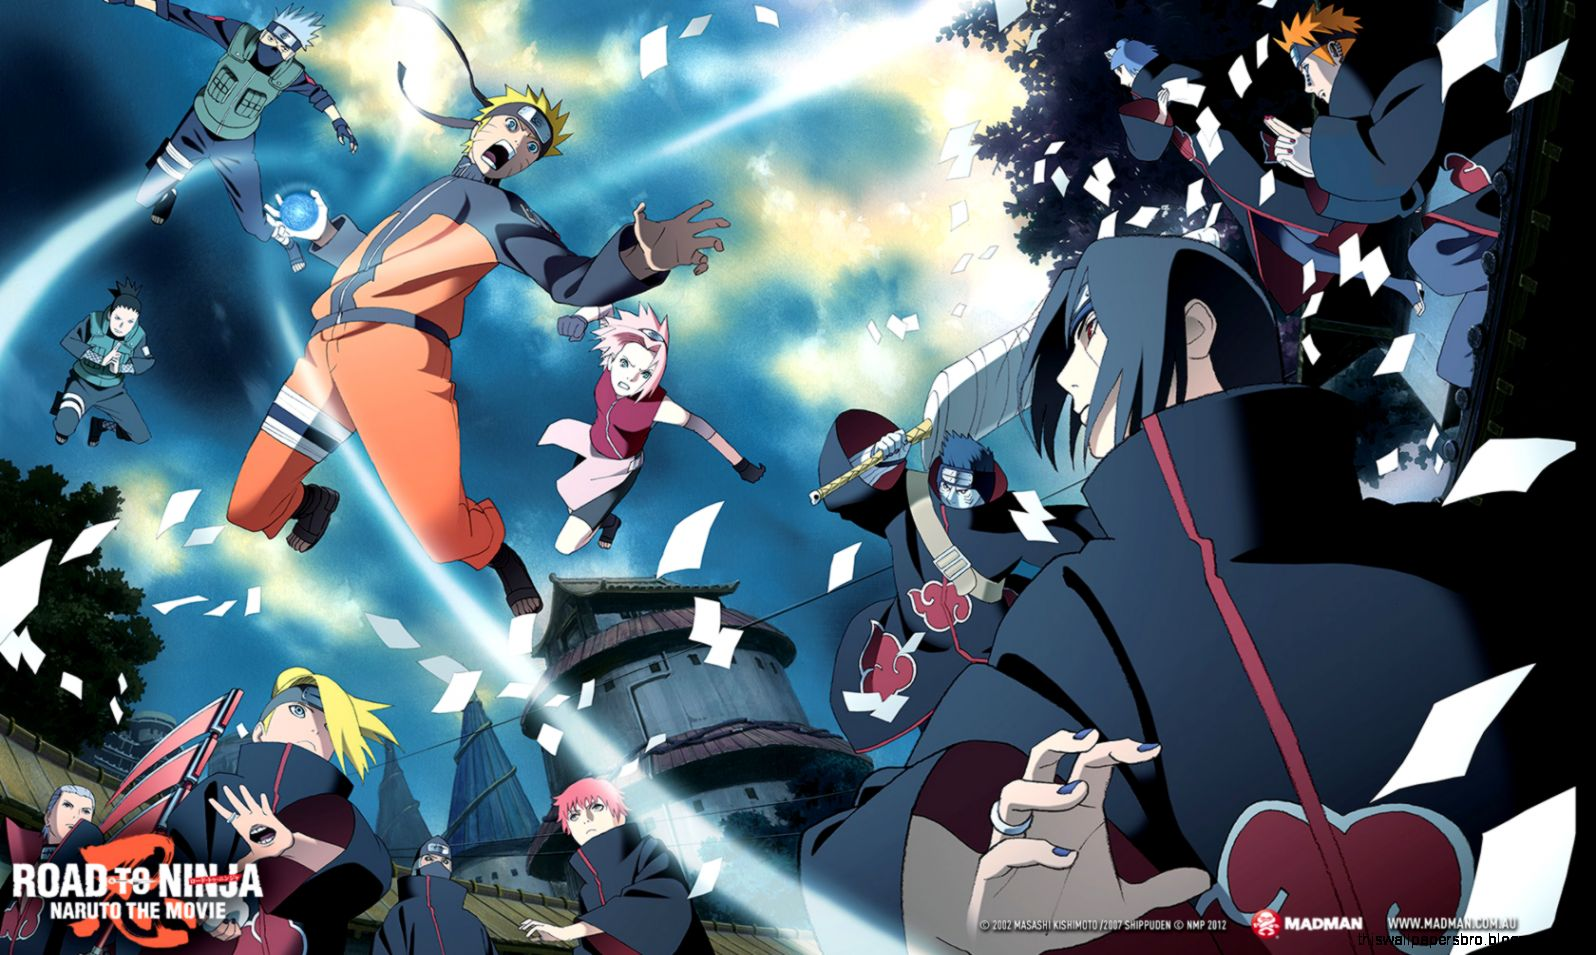 naruto movie wallpaper this wallpapers